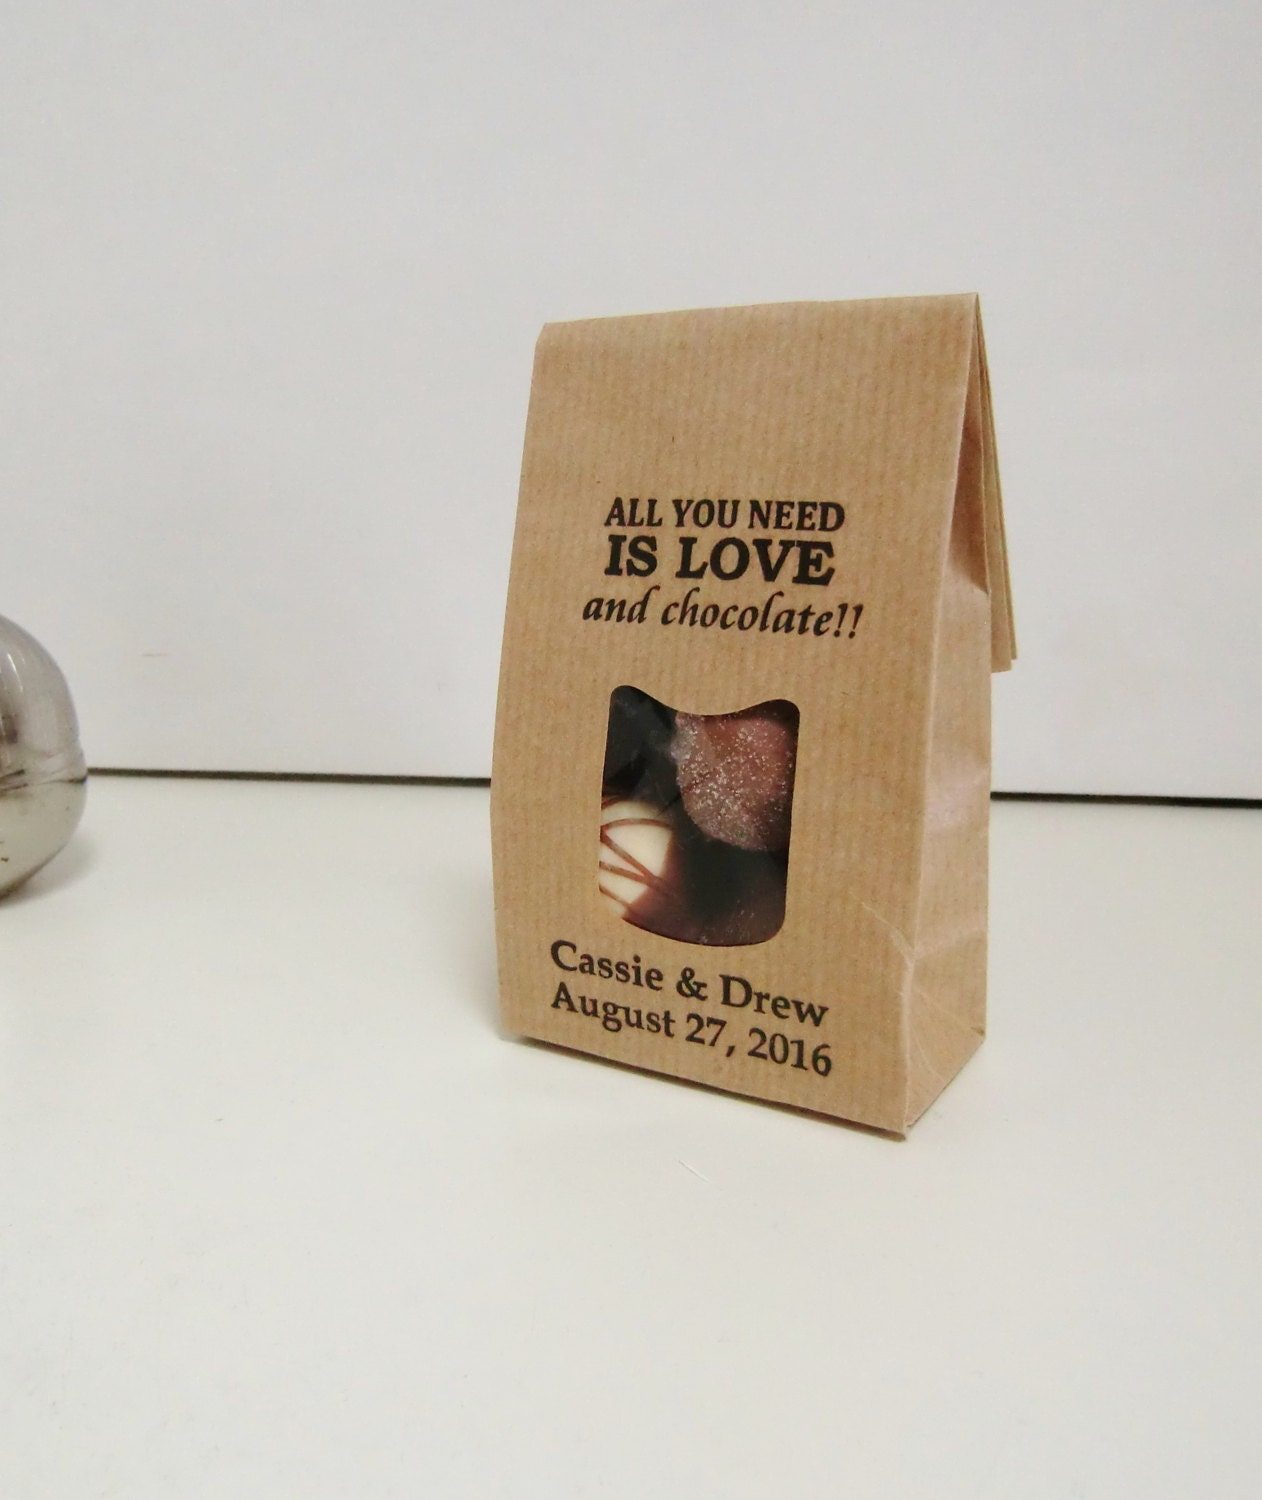 Wedding Gift Bags Etsy : 150 Rustic Wedding Favor Bags-LOVE & by IzzyandLoll on Etsy